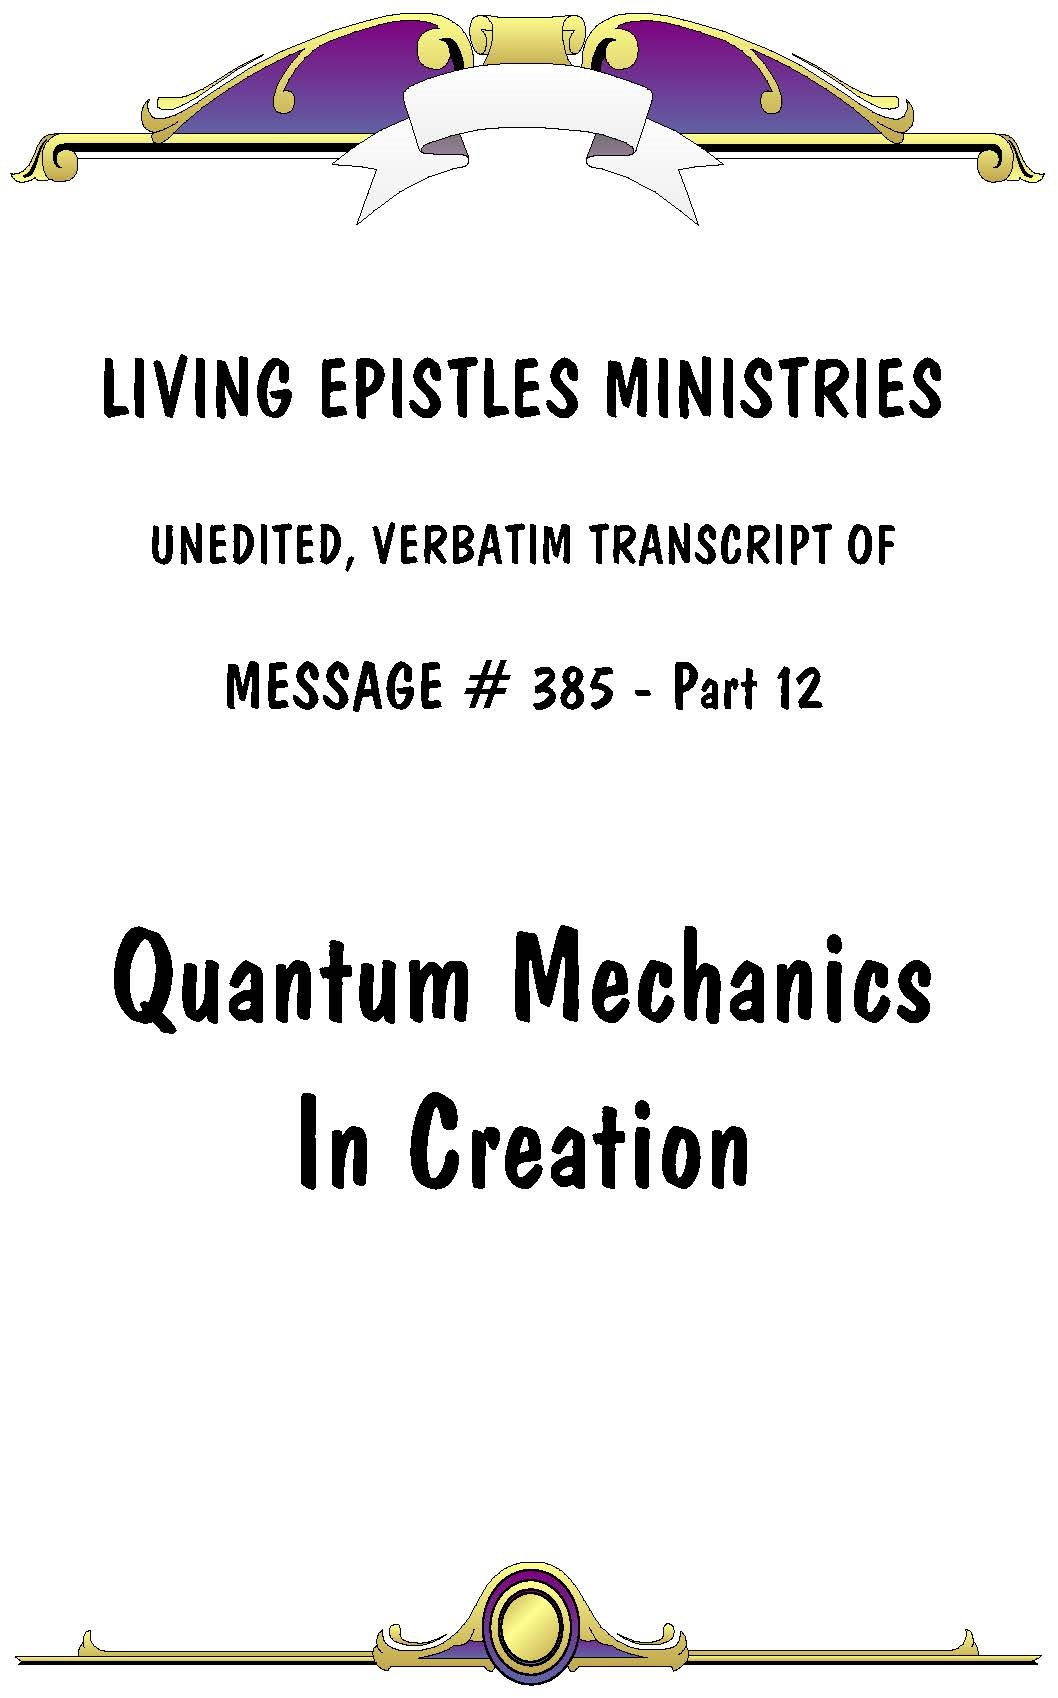 QuantumMechanicsInCreation.LEM.385.12.Cover.040616.72dpi